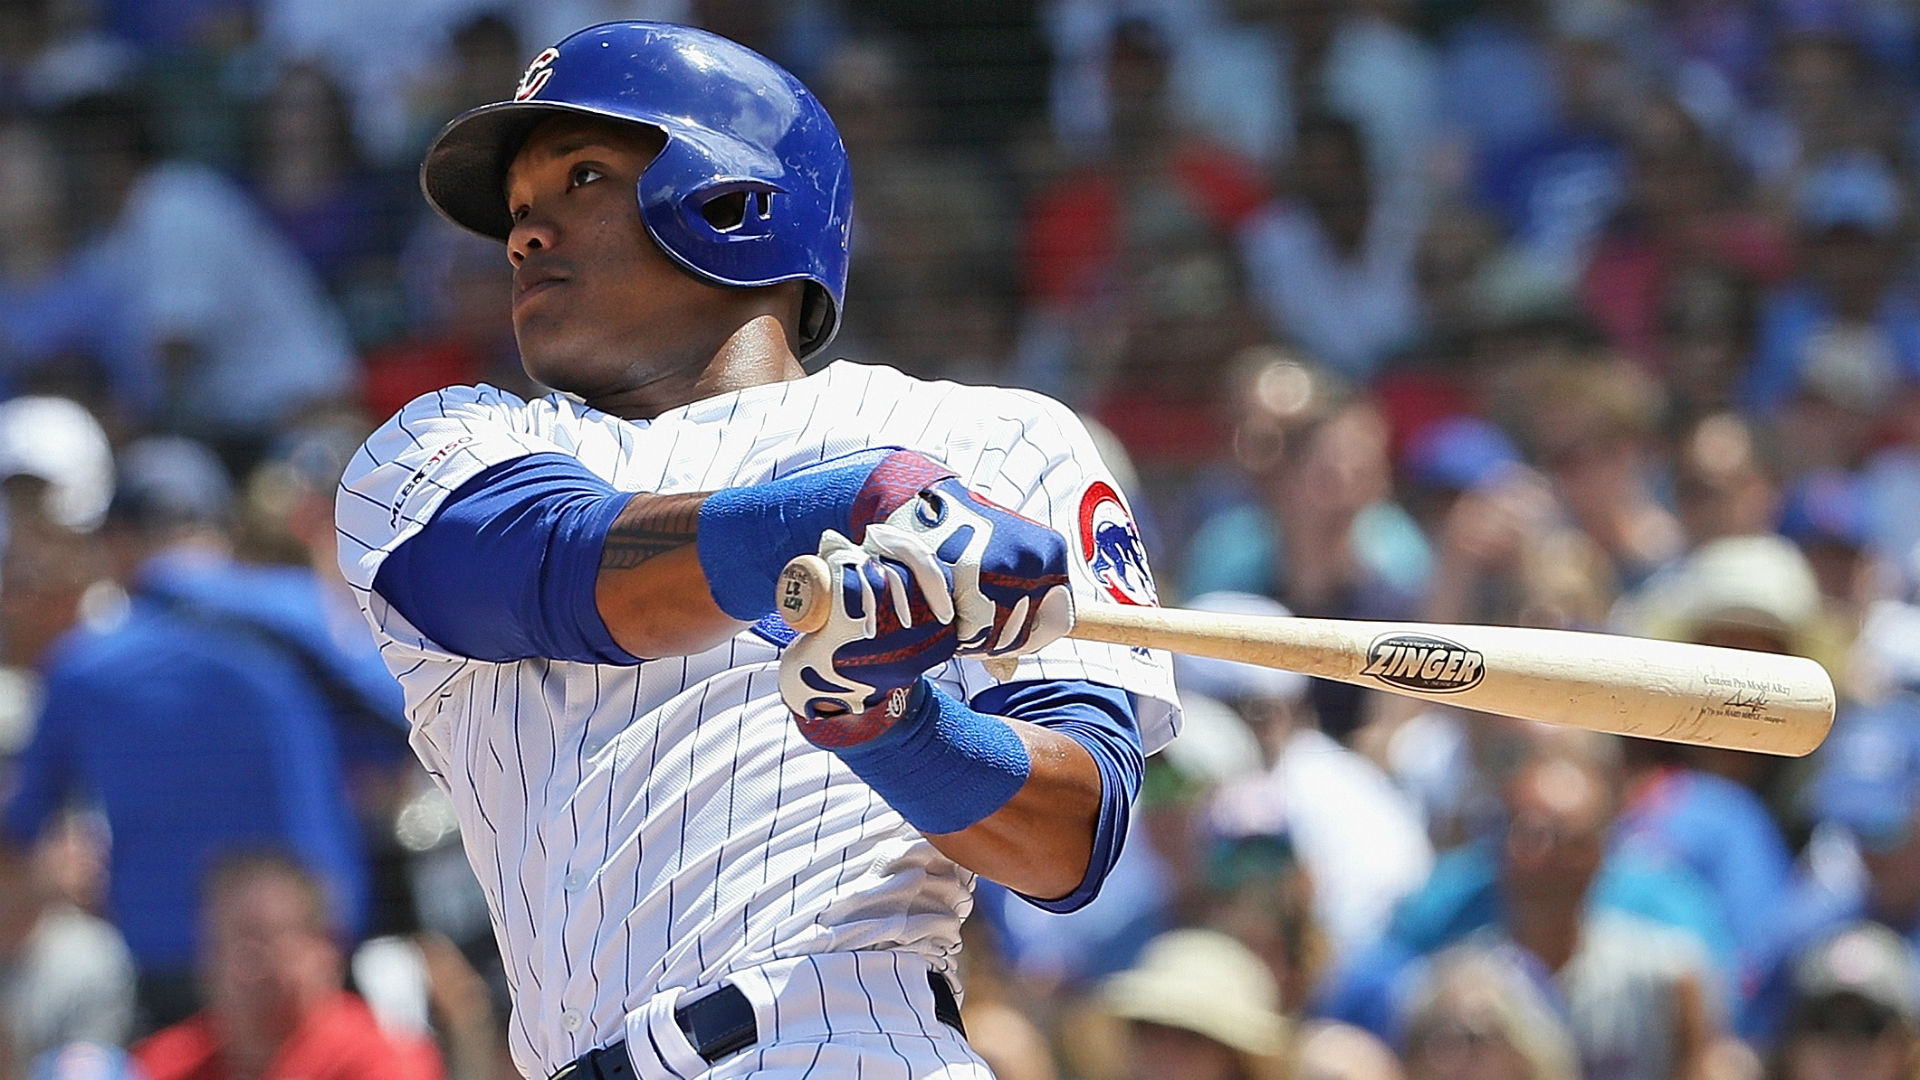 The Cubs shortstop was hit by a pitch in the head in the third inning.